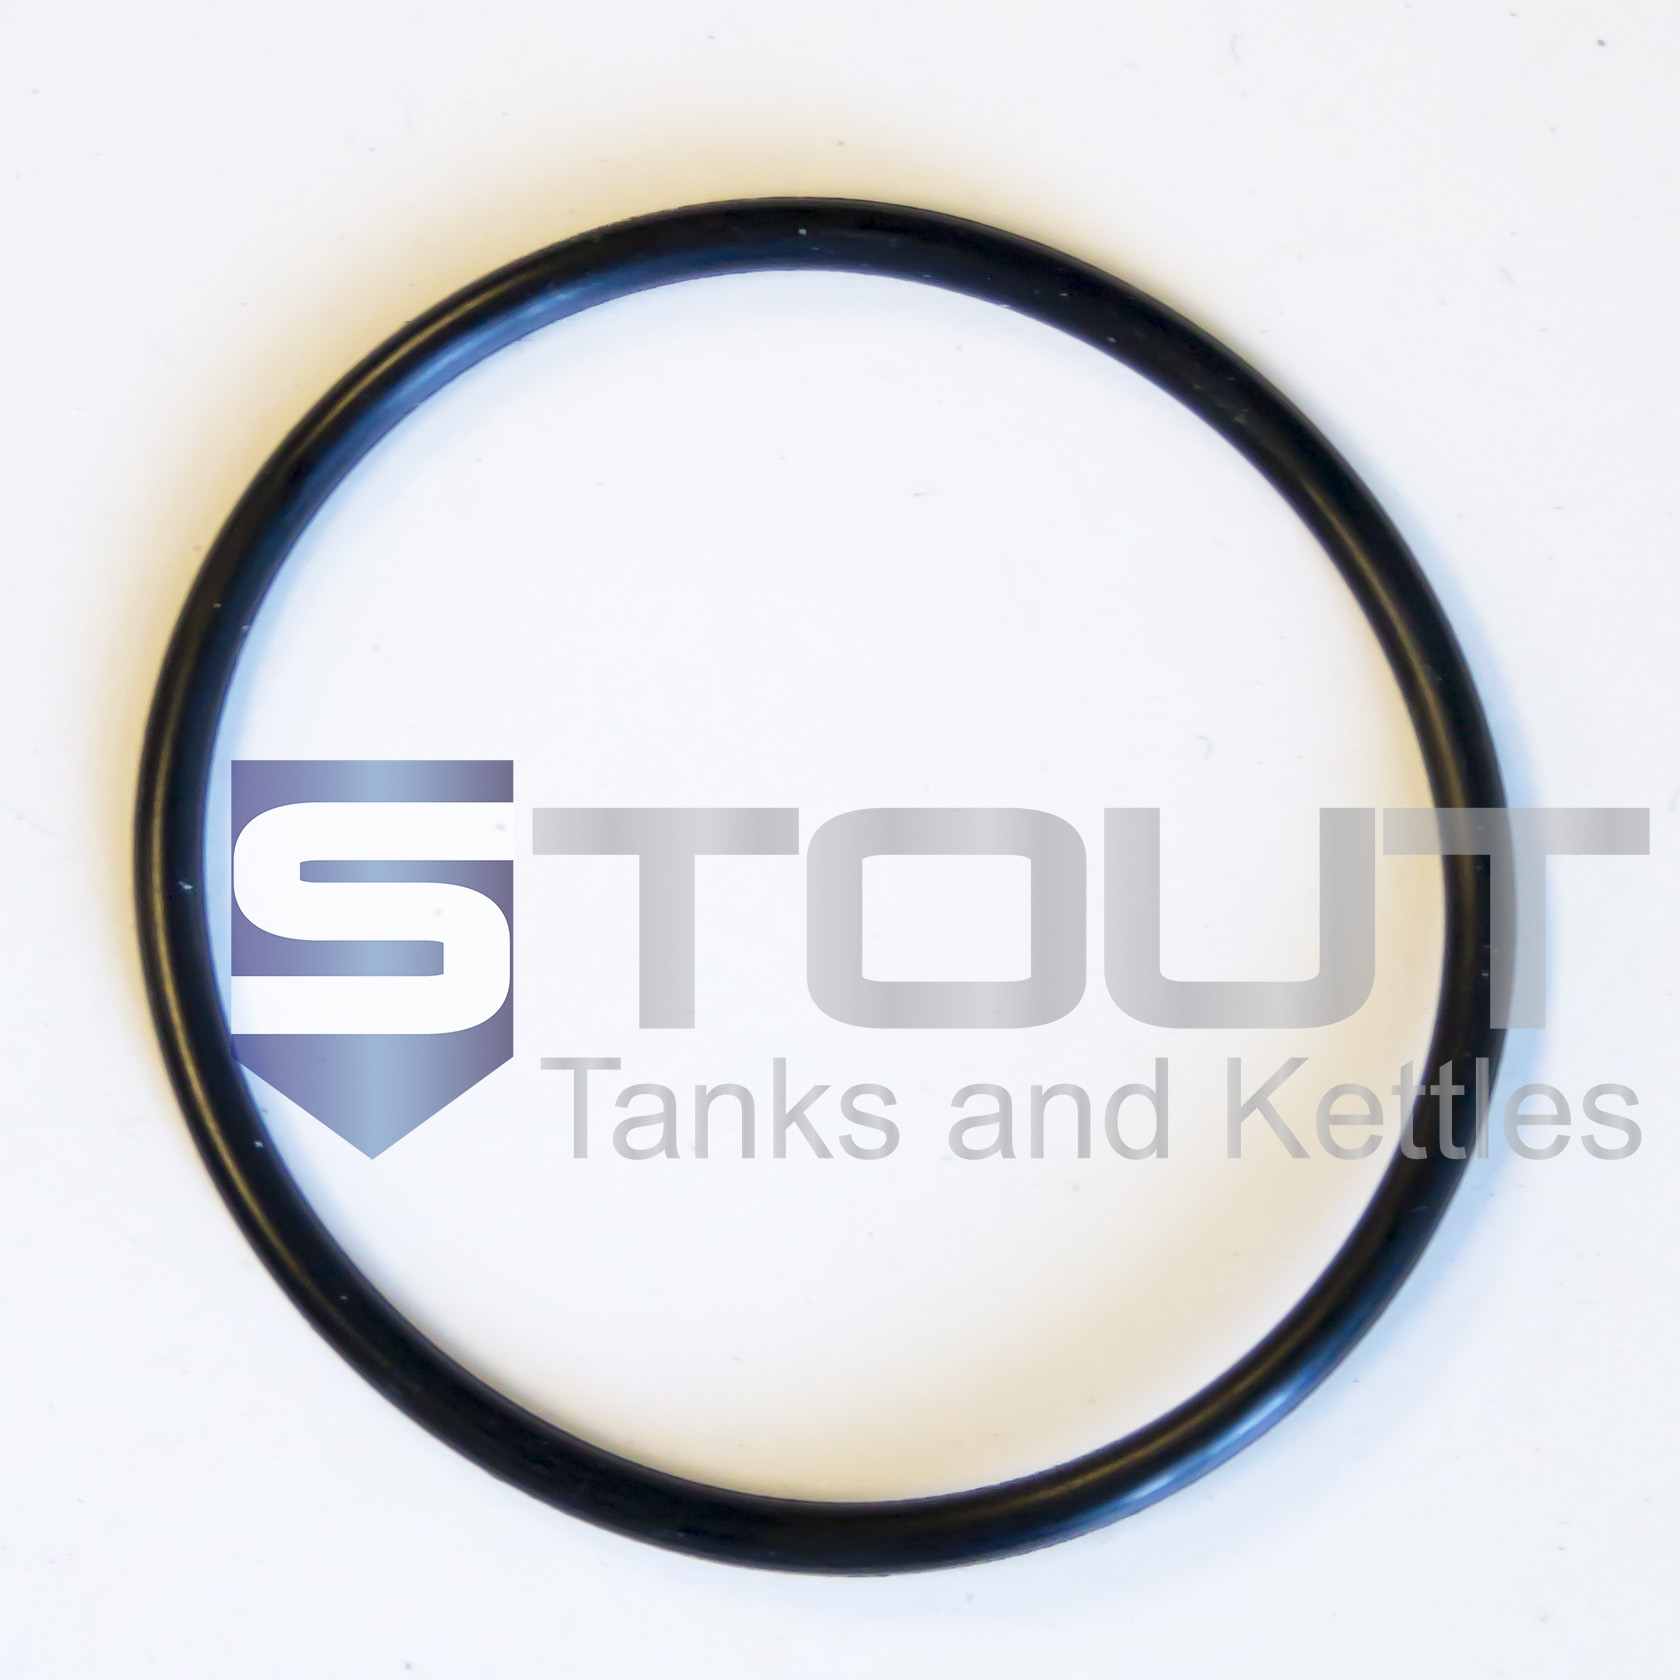 Replacement O-Ring for Racking Arm (for 3 BBL / 145 Gallon Direct Fire Kettle)